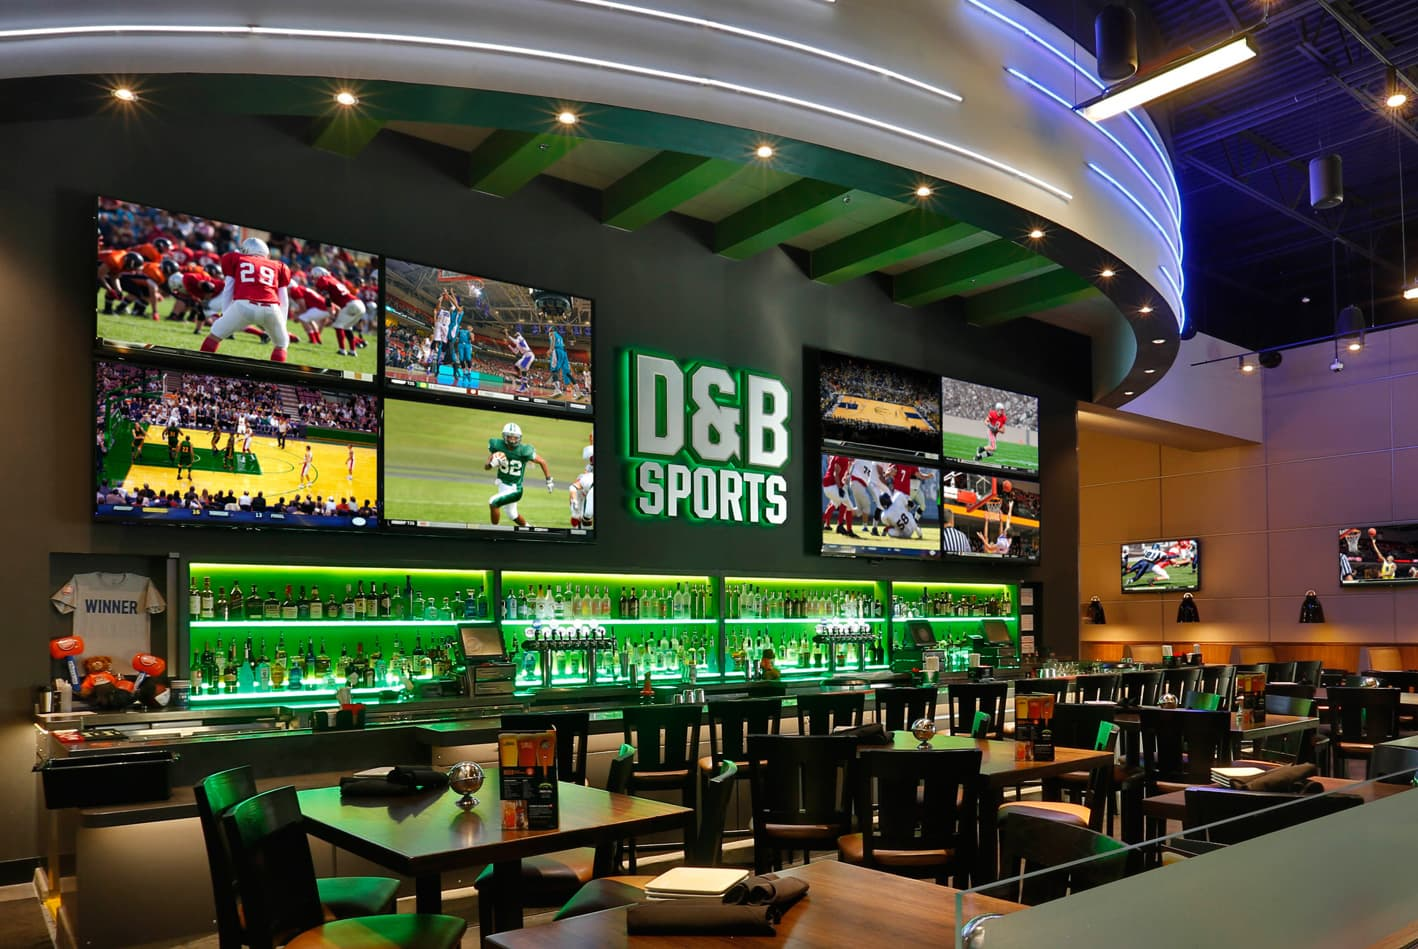 Dave and Buster's Sports Bar